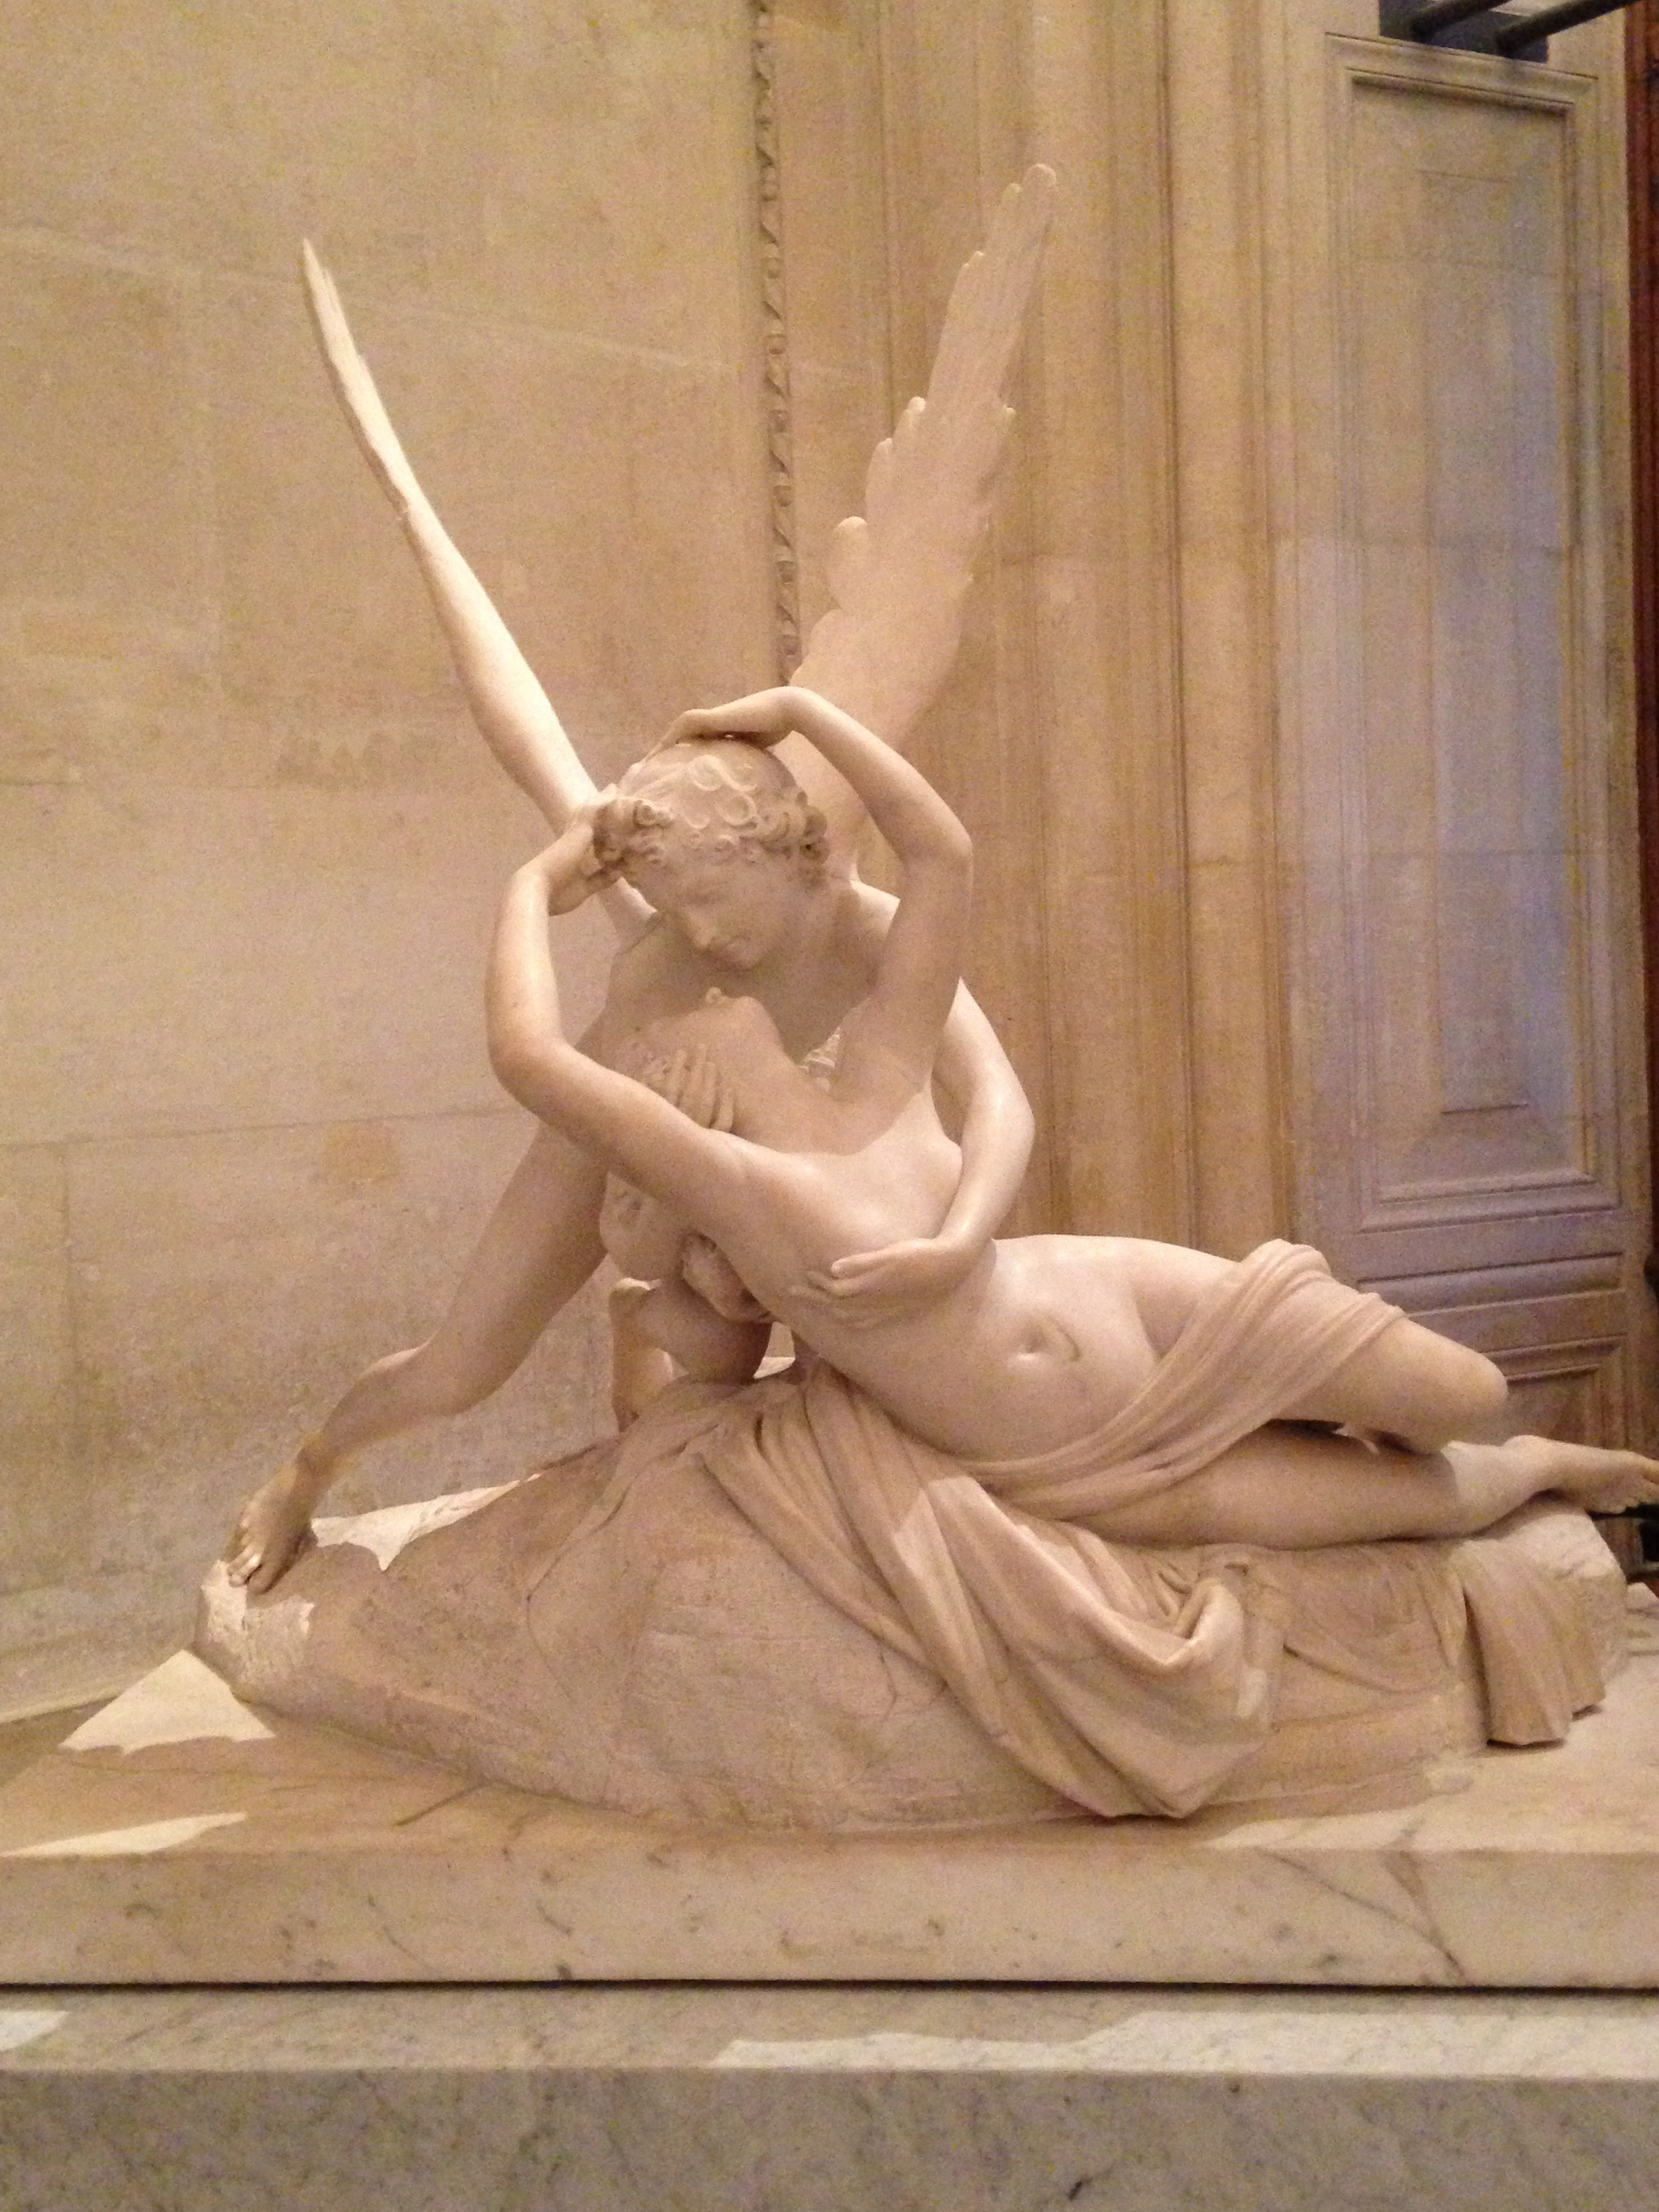 Cupid and Psyche. (Not Icarus.) I still love this.